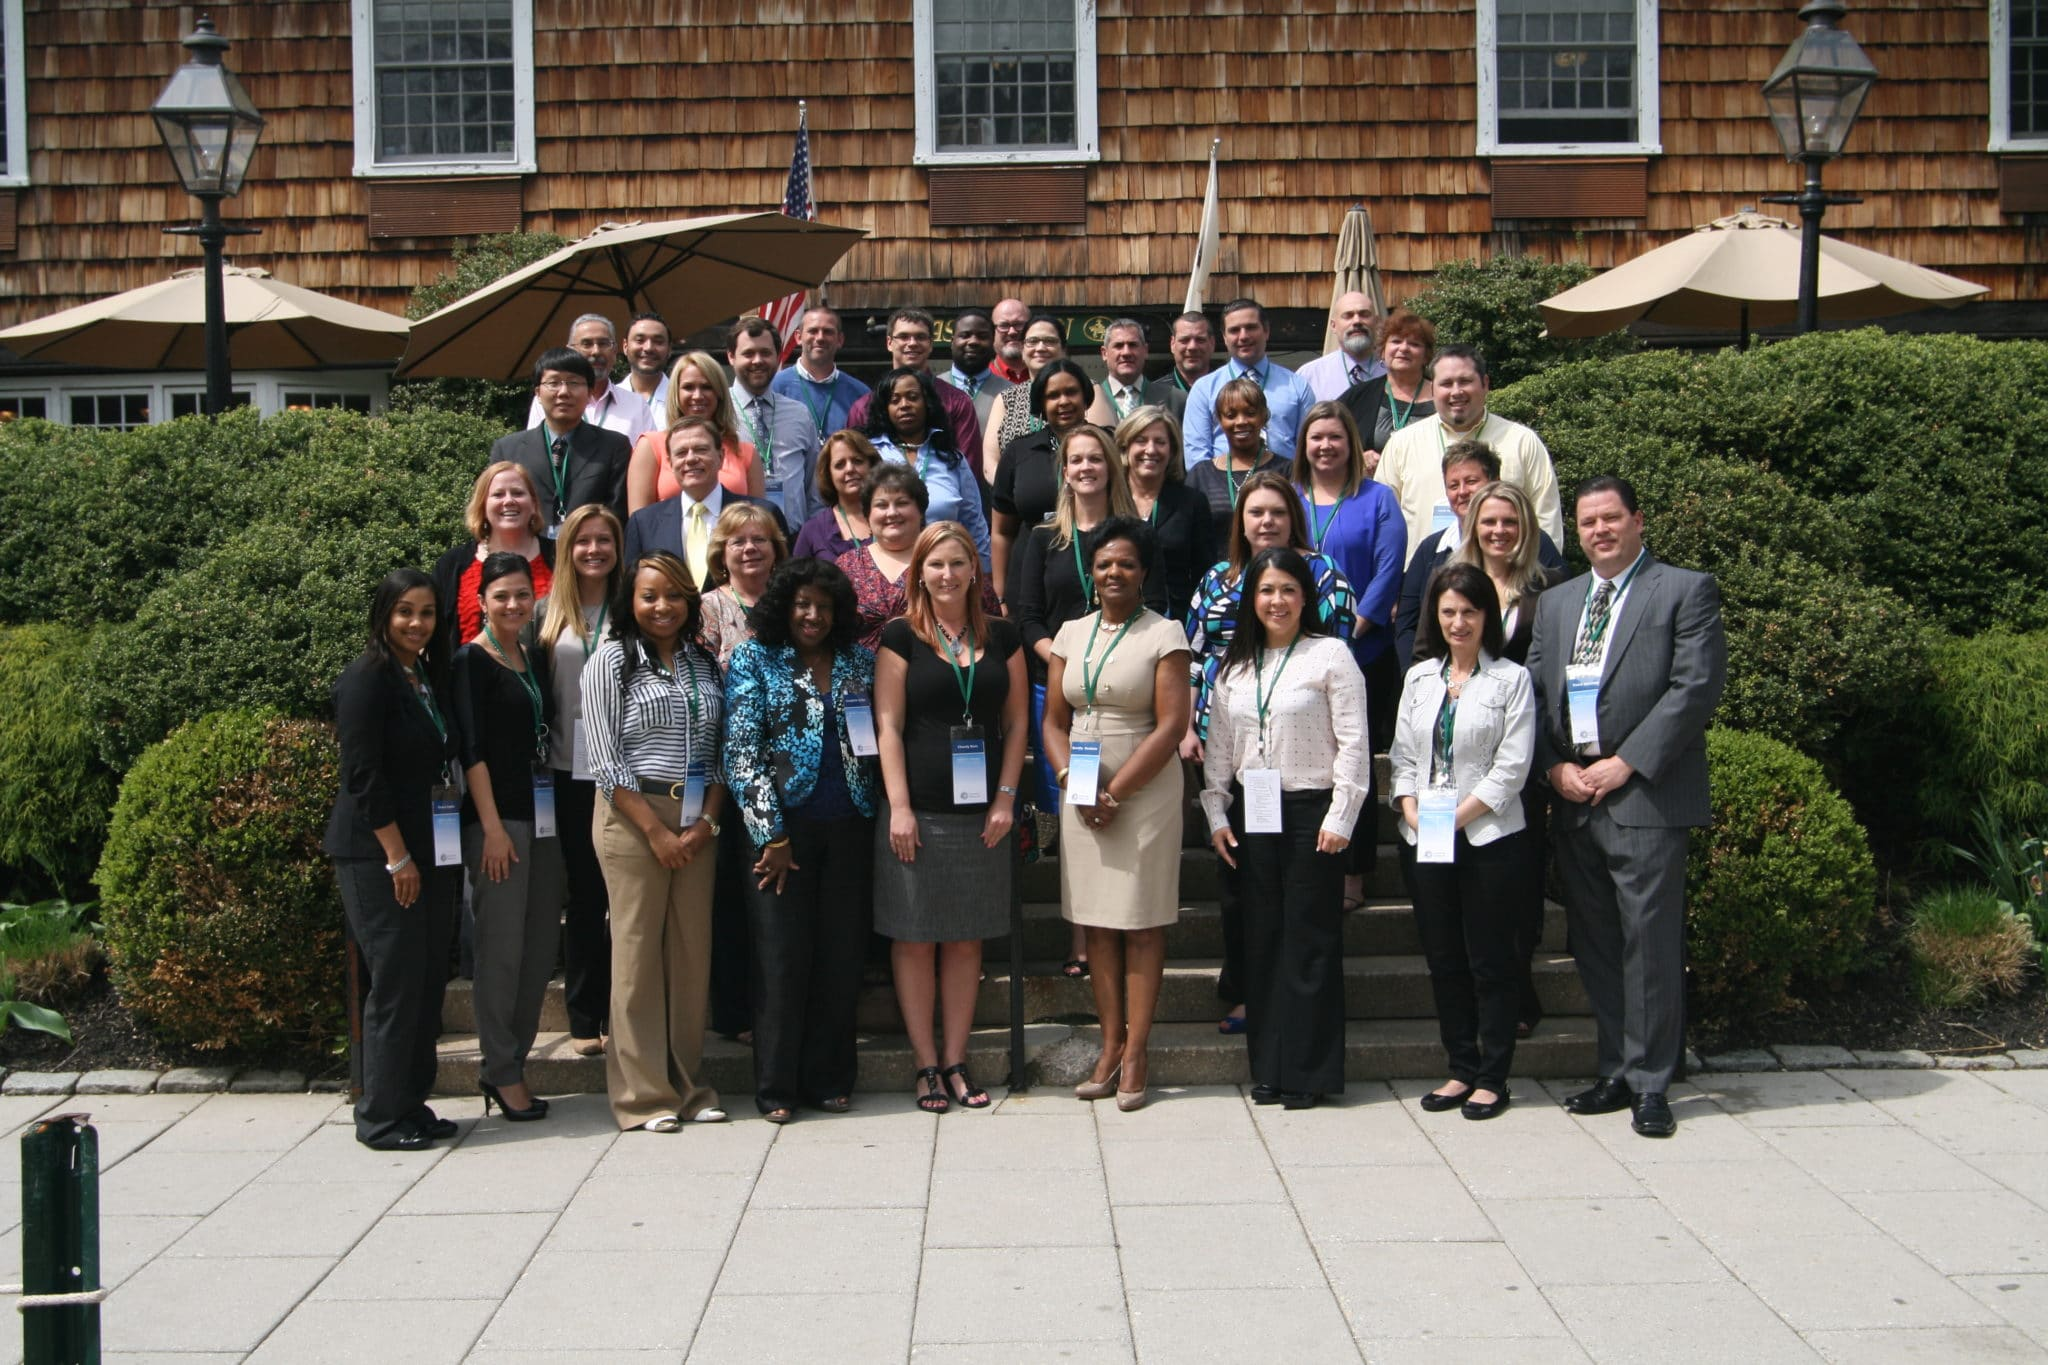 May, 2014 - Some key Community Options' staff members from across the country pose for a photo at the 8th annual iMatter Conference in Princeton, NJ.